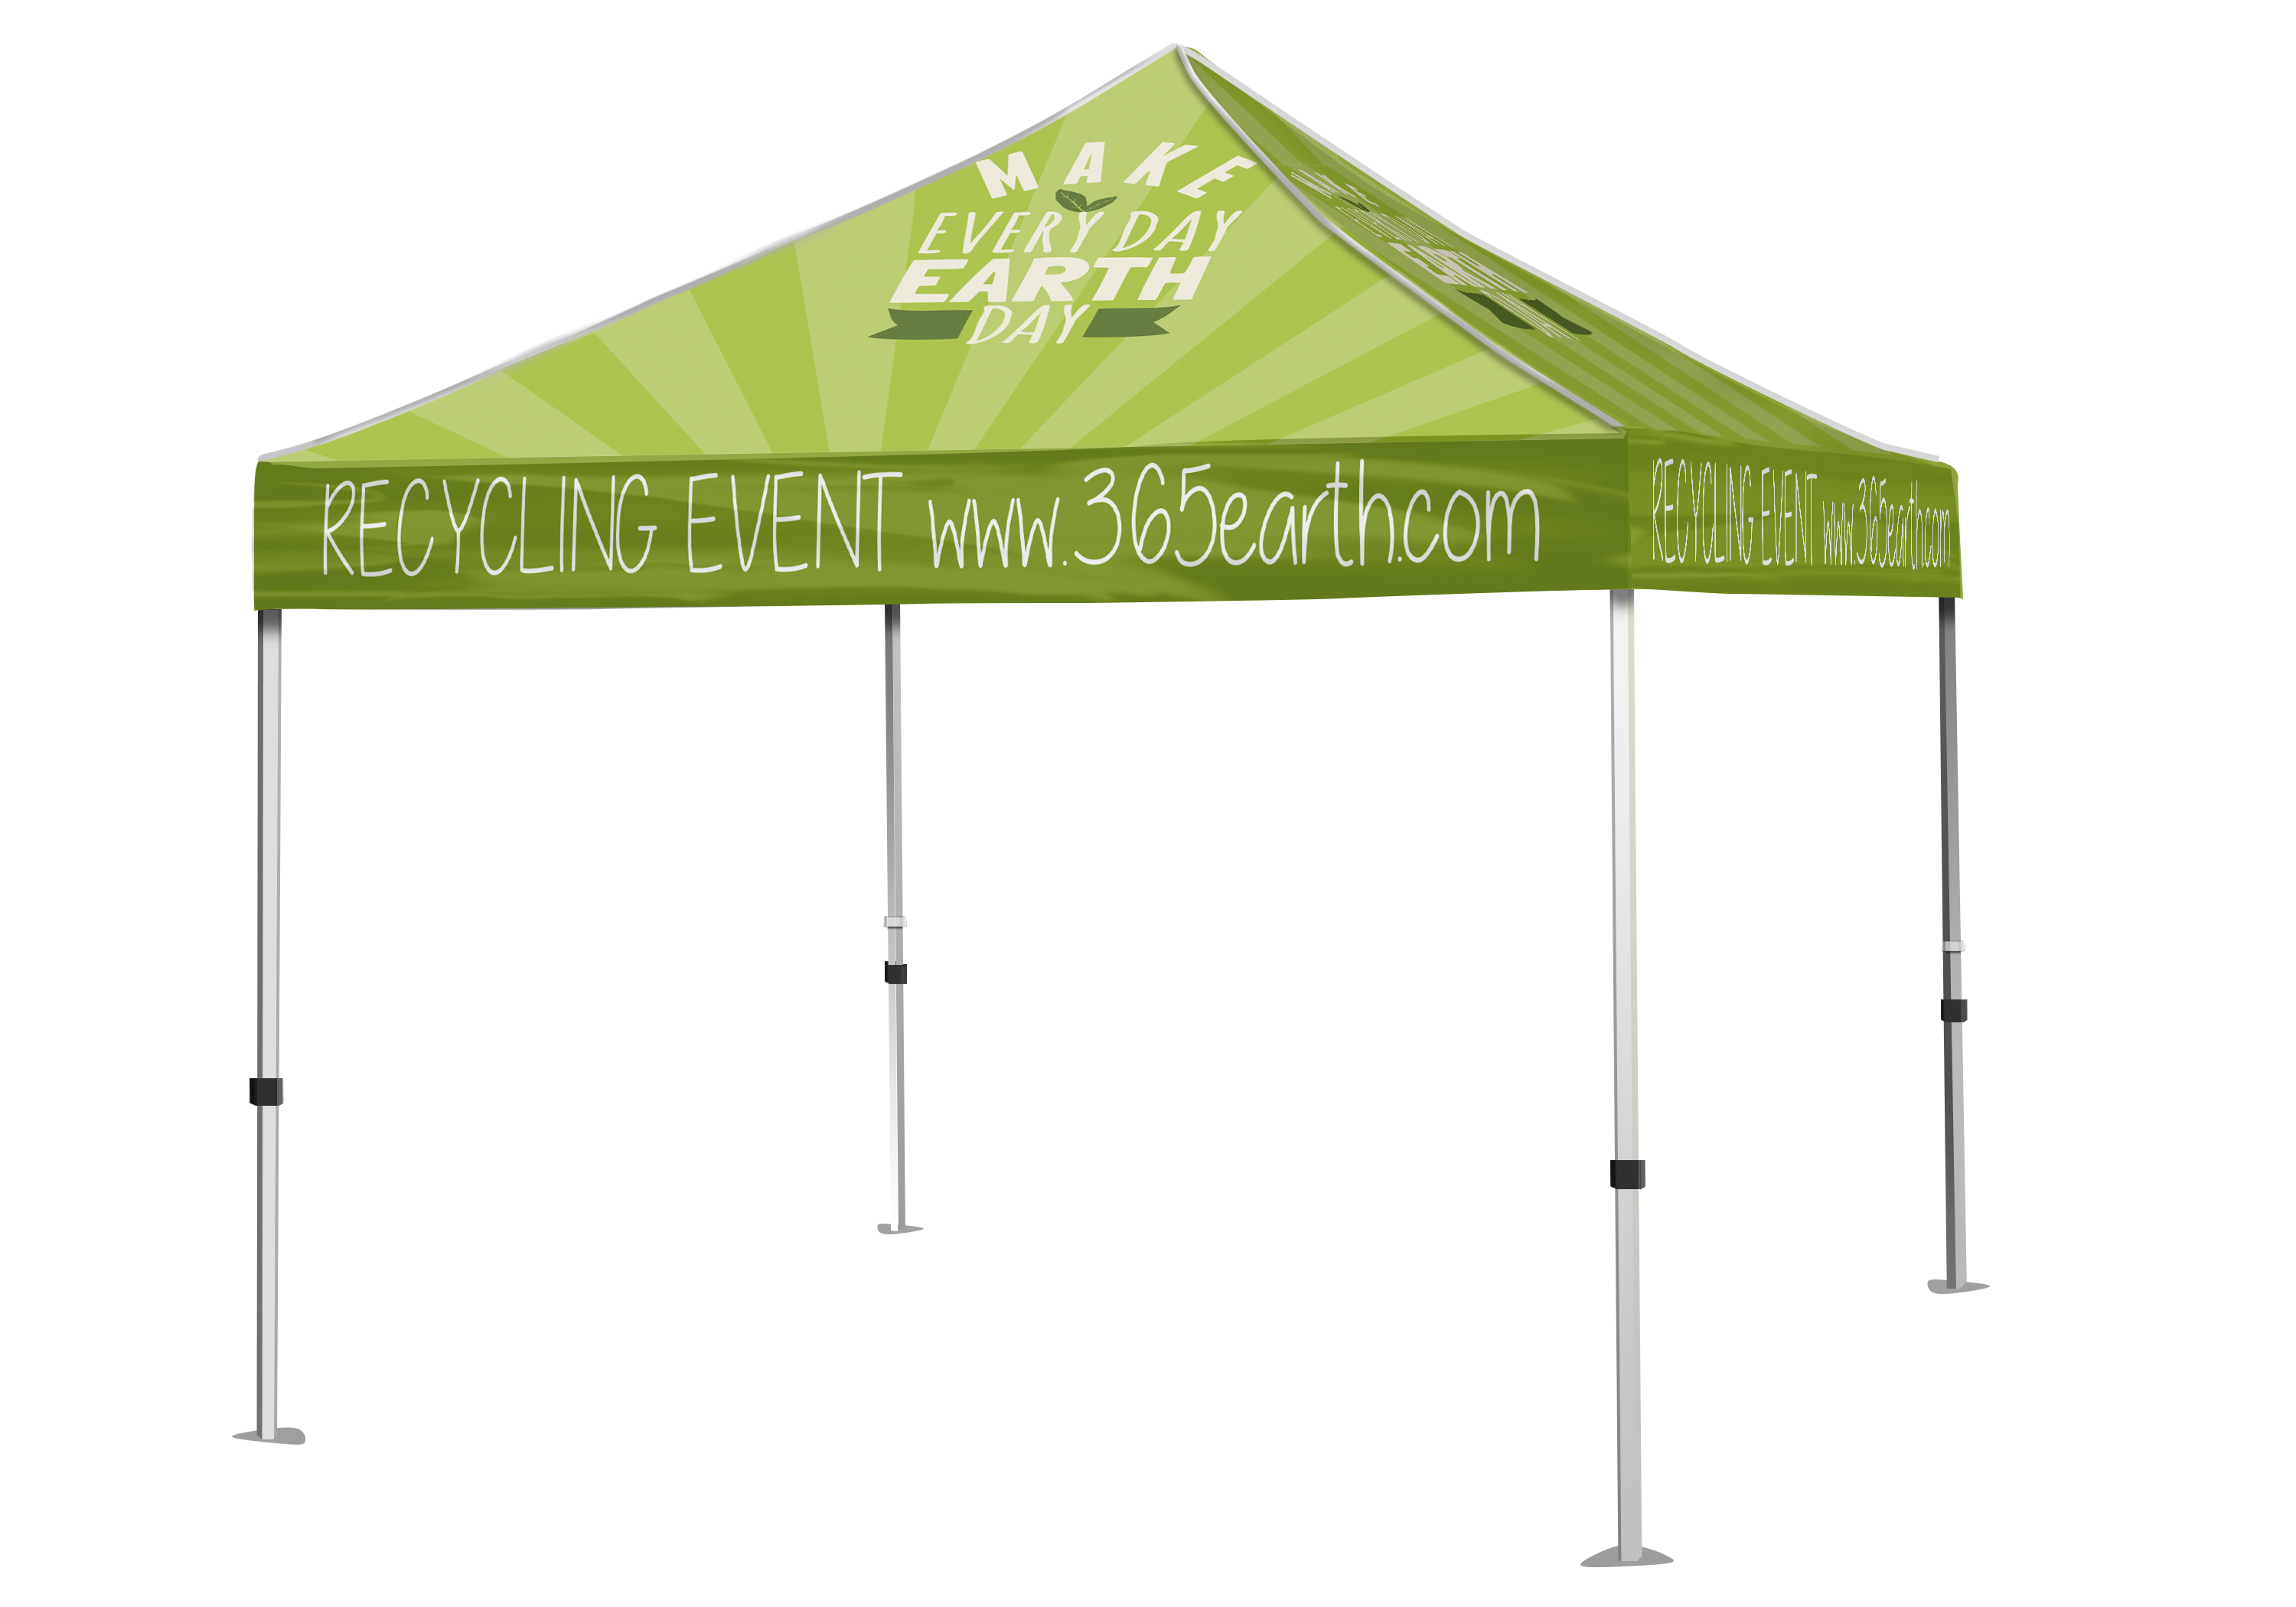 Full Color Event Tents